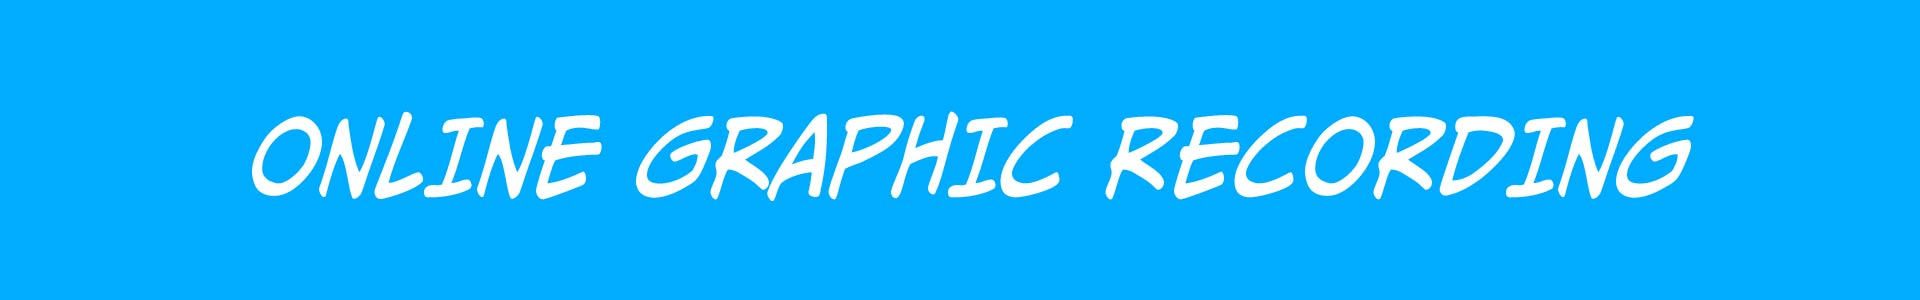 Banner Online Graphic Recording